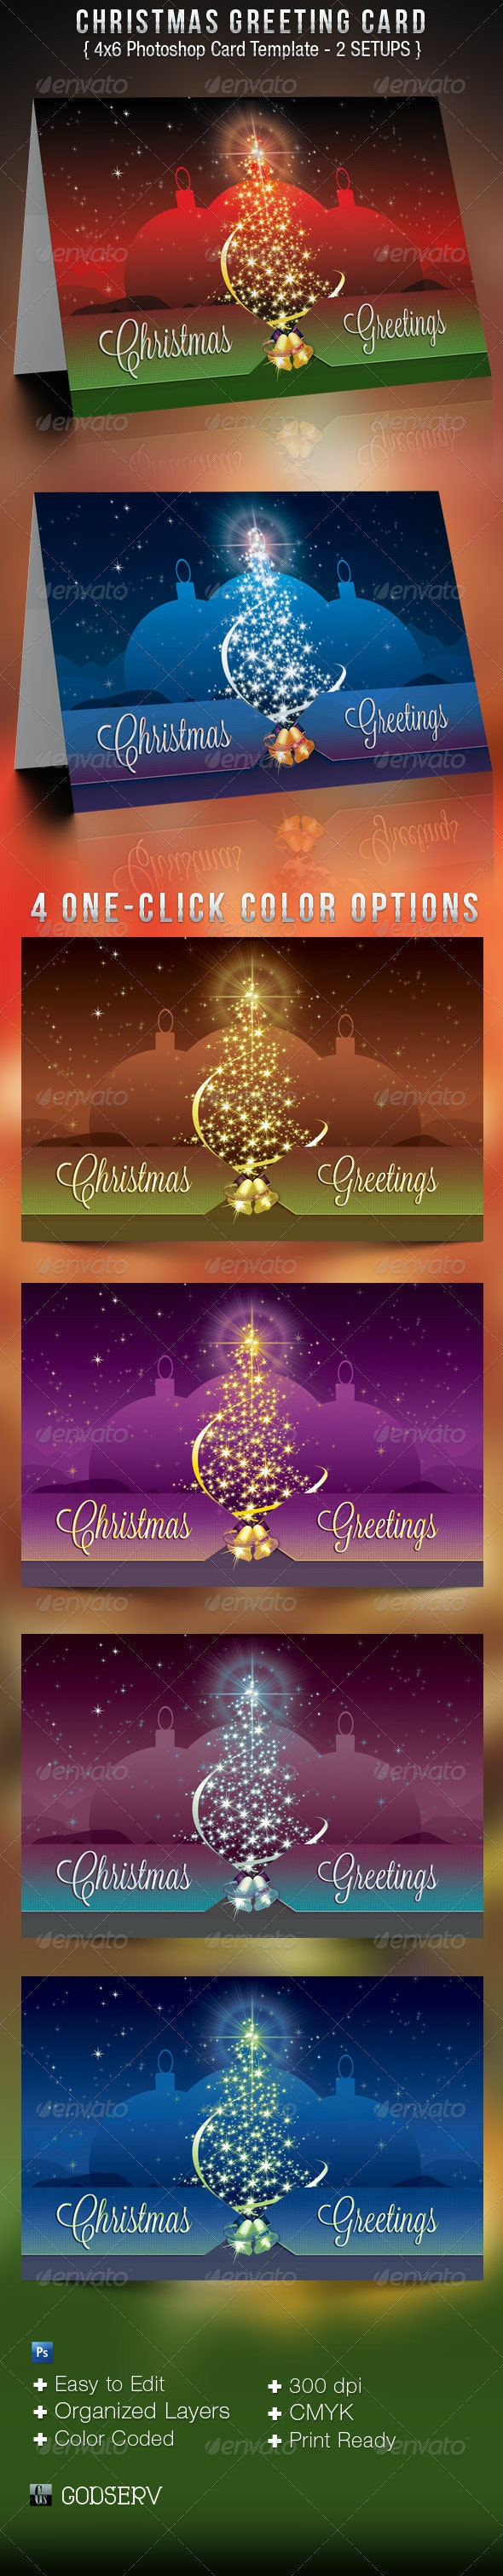 Christmas Greeting Card Template - Holiday Greeting Cards